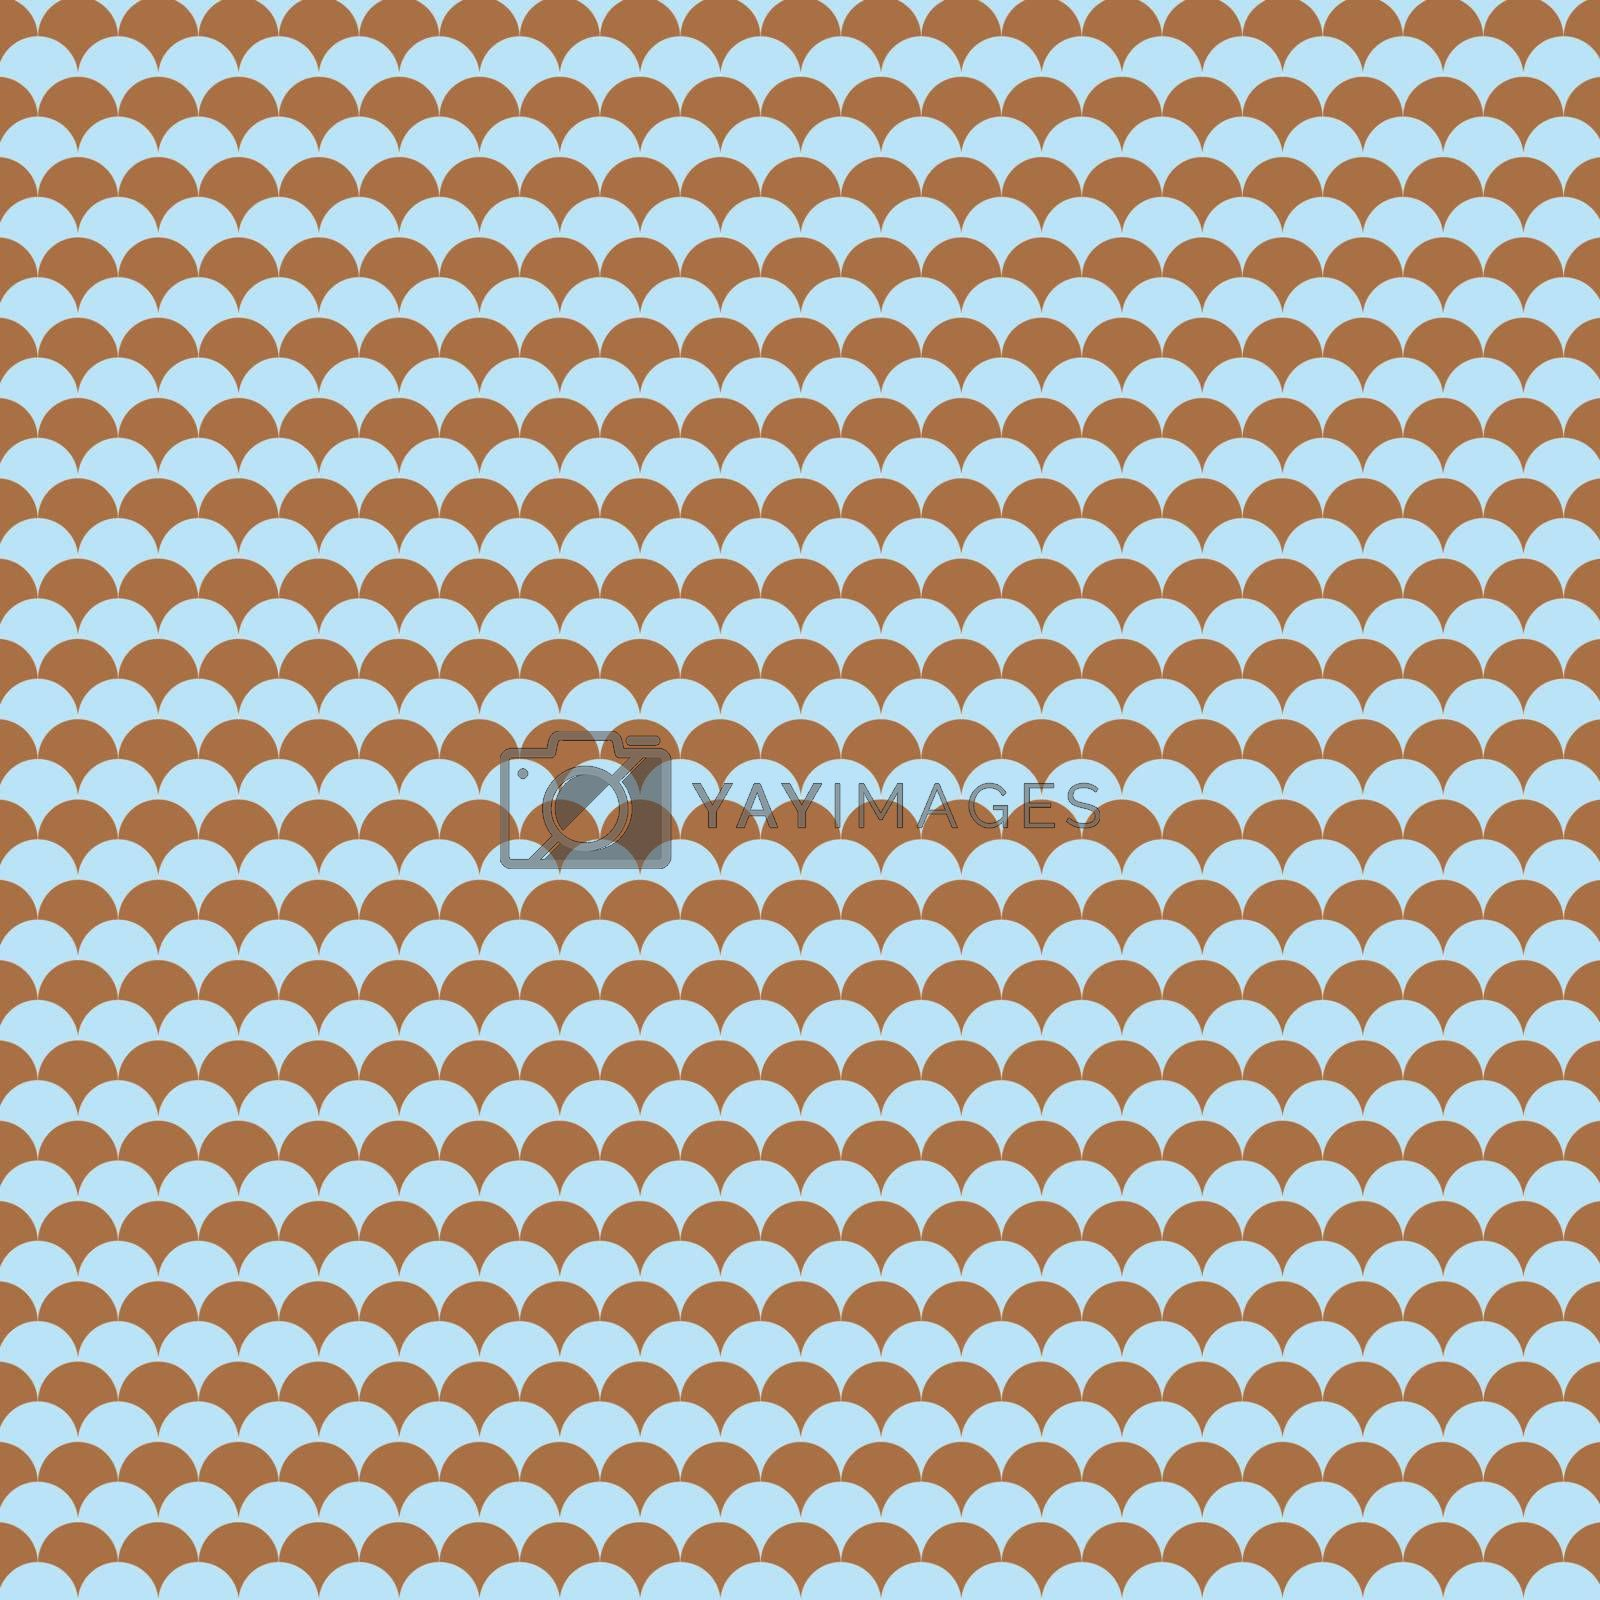 japanese pattern EPS 10 vector file included